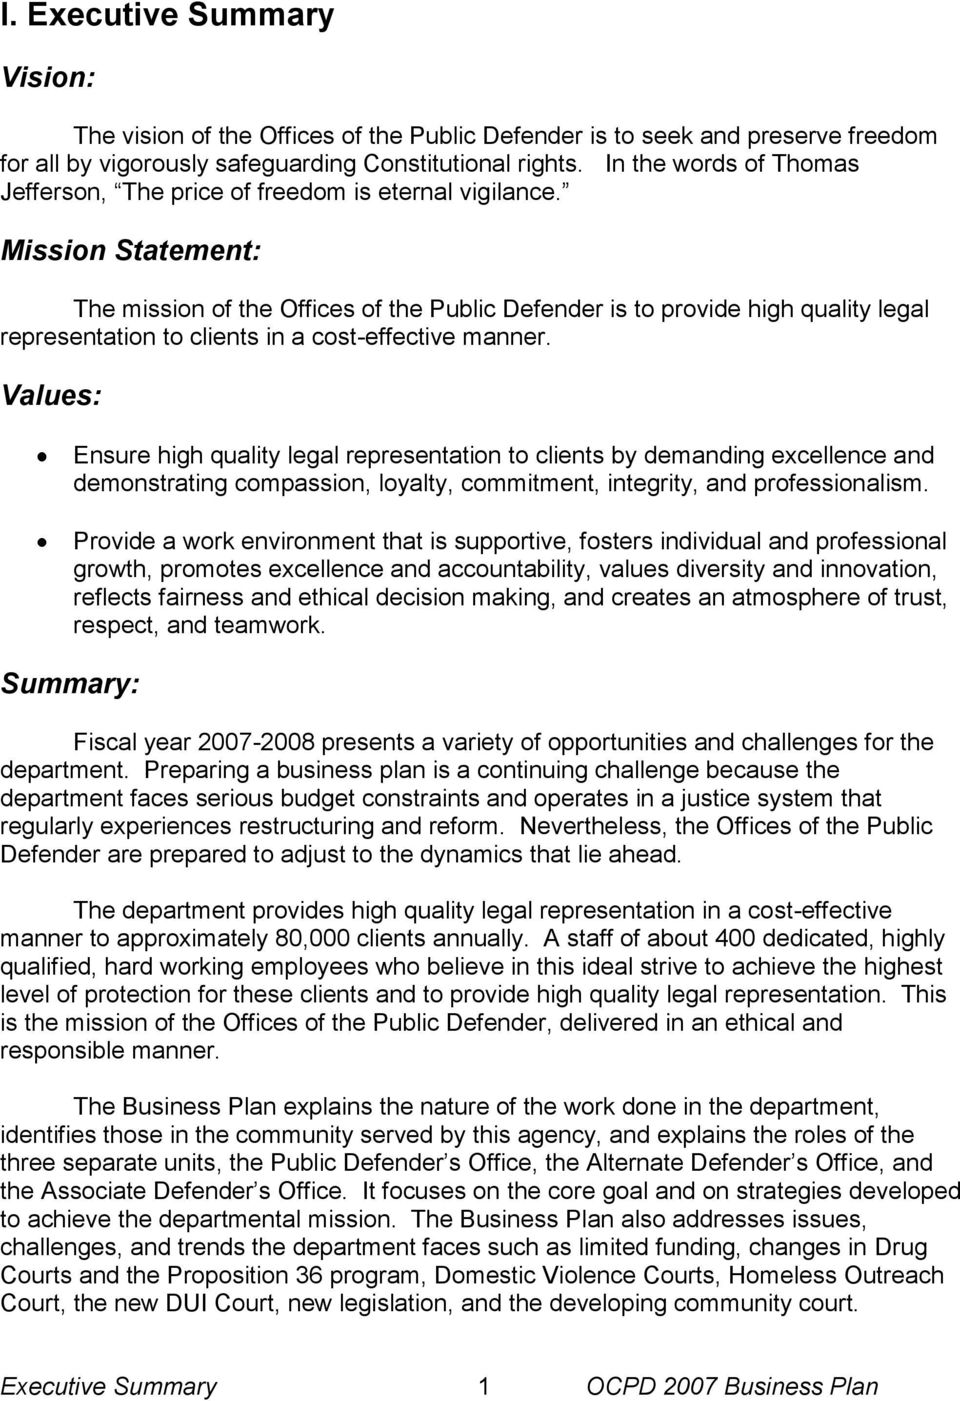 Mission Statement: The mission of the Offices of the Public Defender is to provide high quality legal representation to clients in a cost-effective manner.